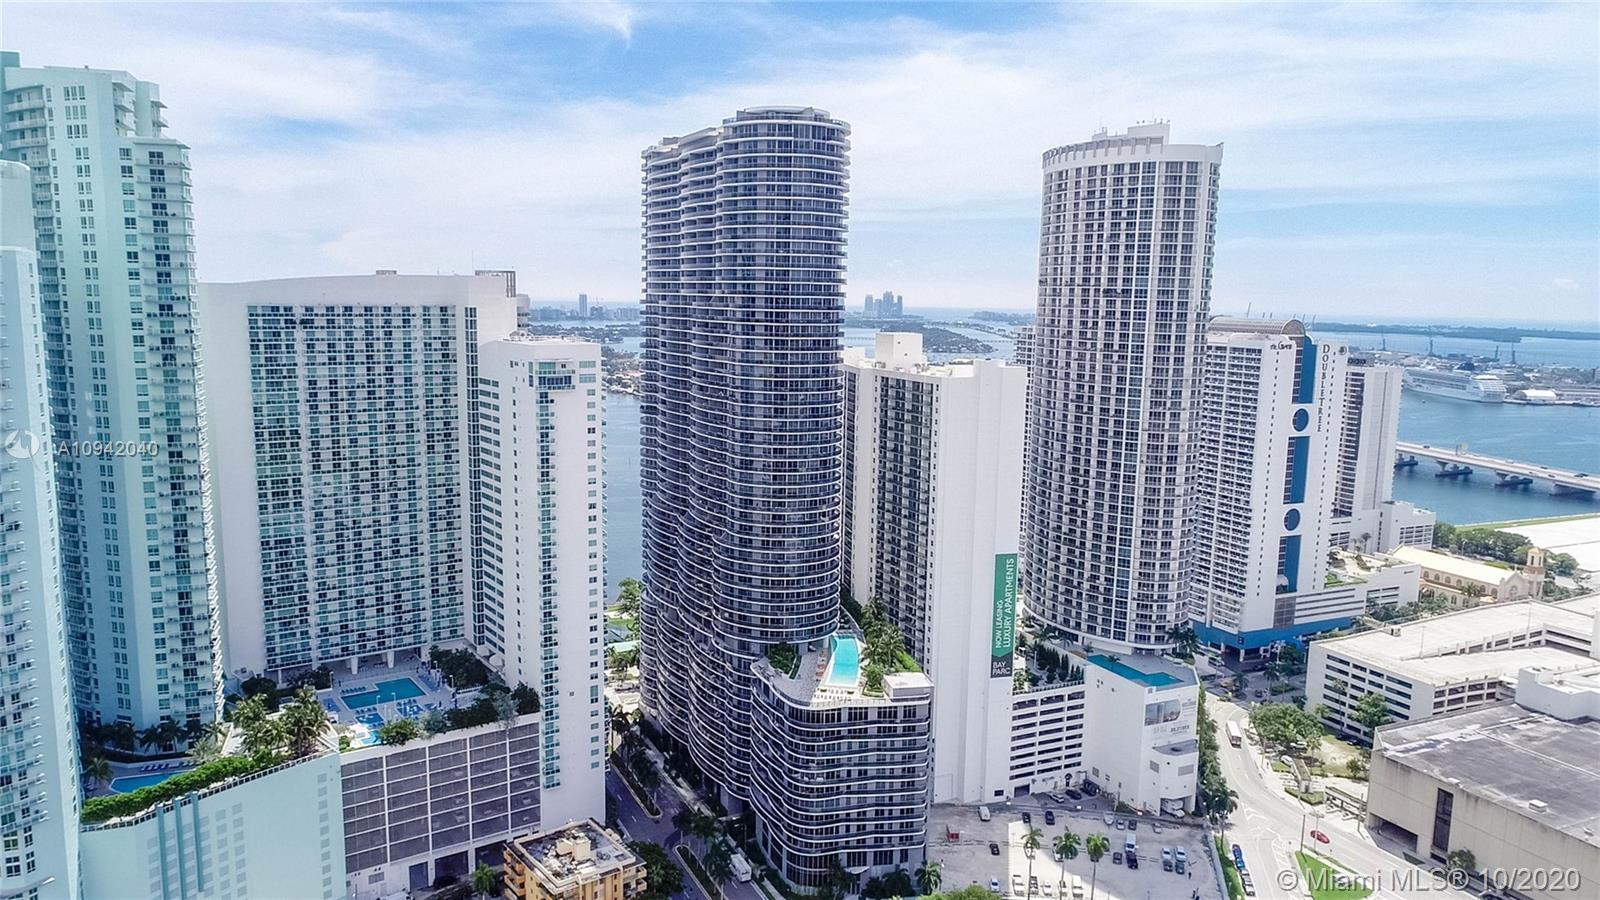 Priced to sell! Live in the center of it all at The Aria on the Bay! Enjoy this gorgeous one bedroom